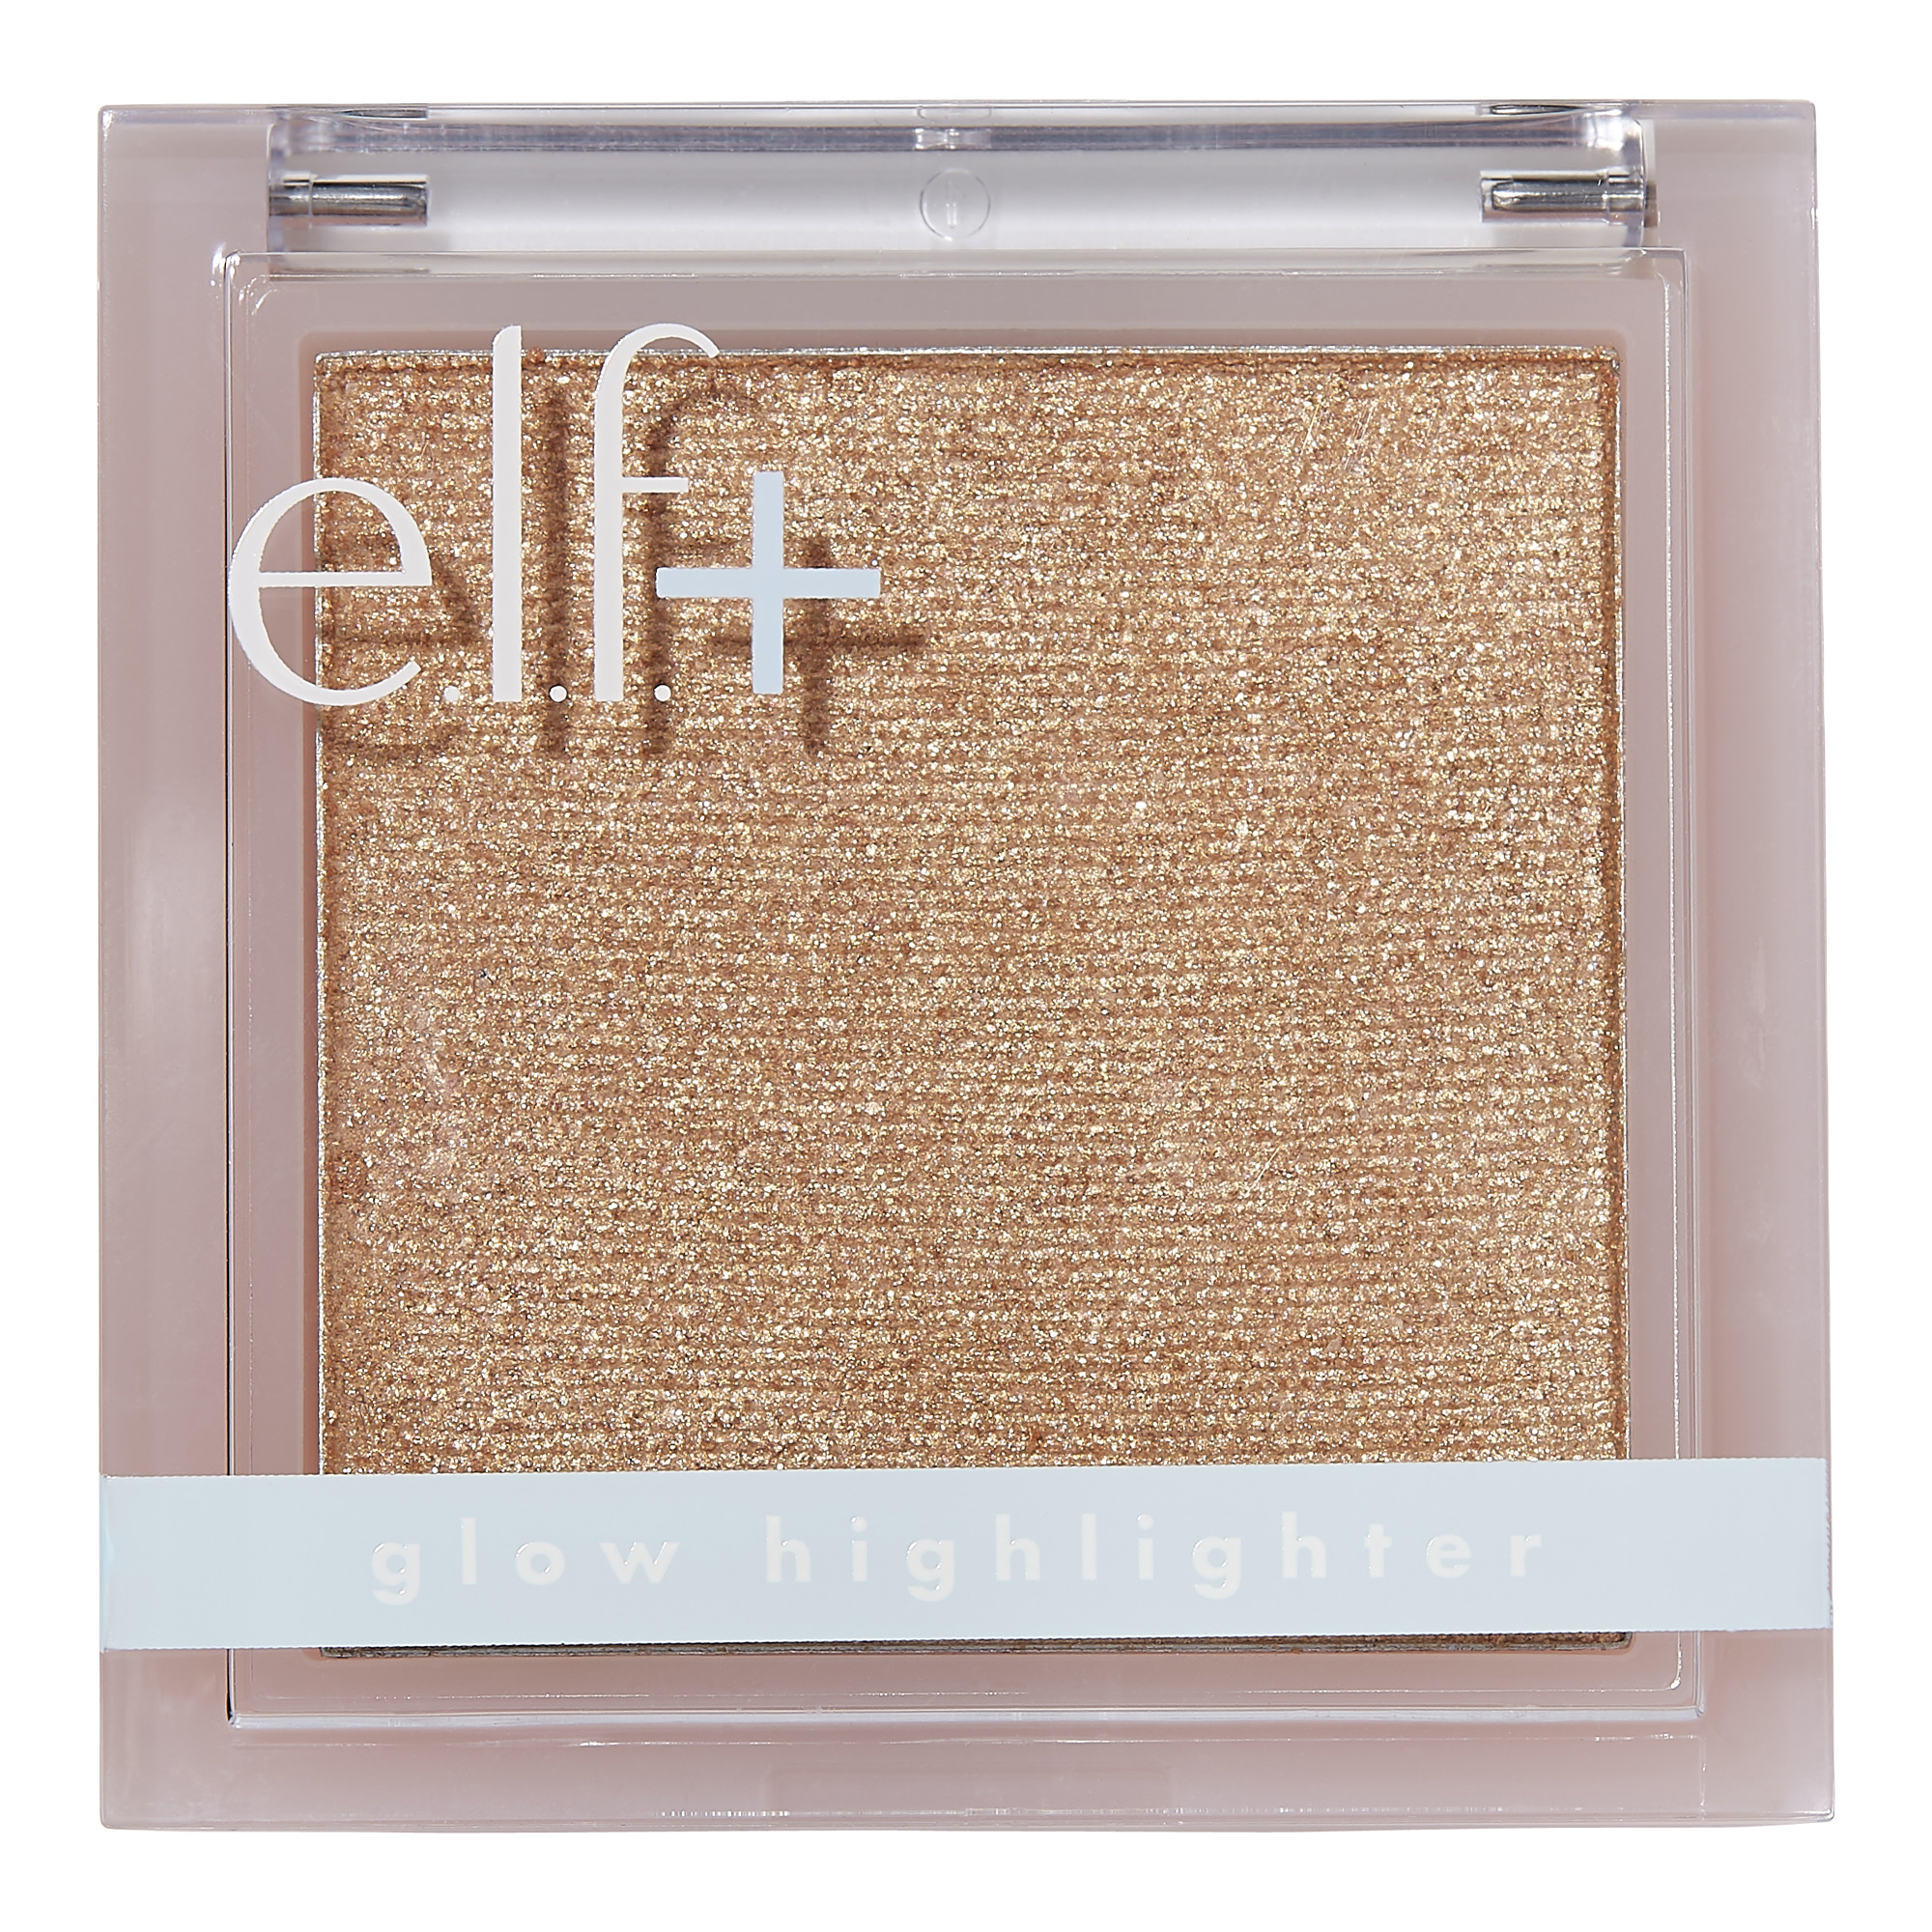 e.l.f. Cosmetics Elf+ Coco Glow Highlighter, Gold